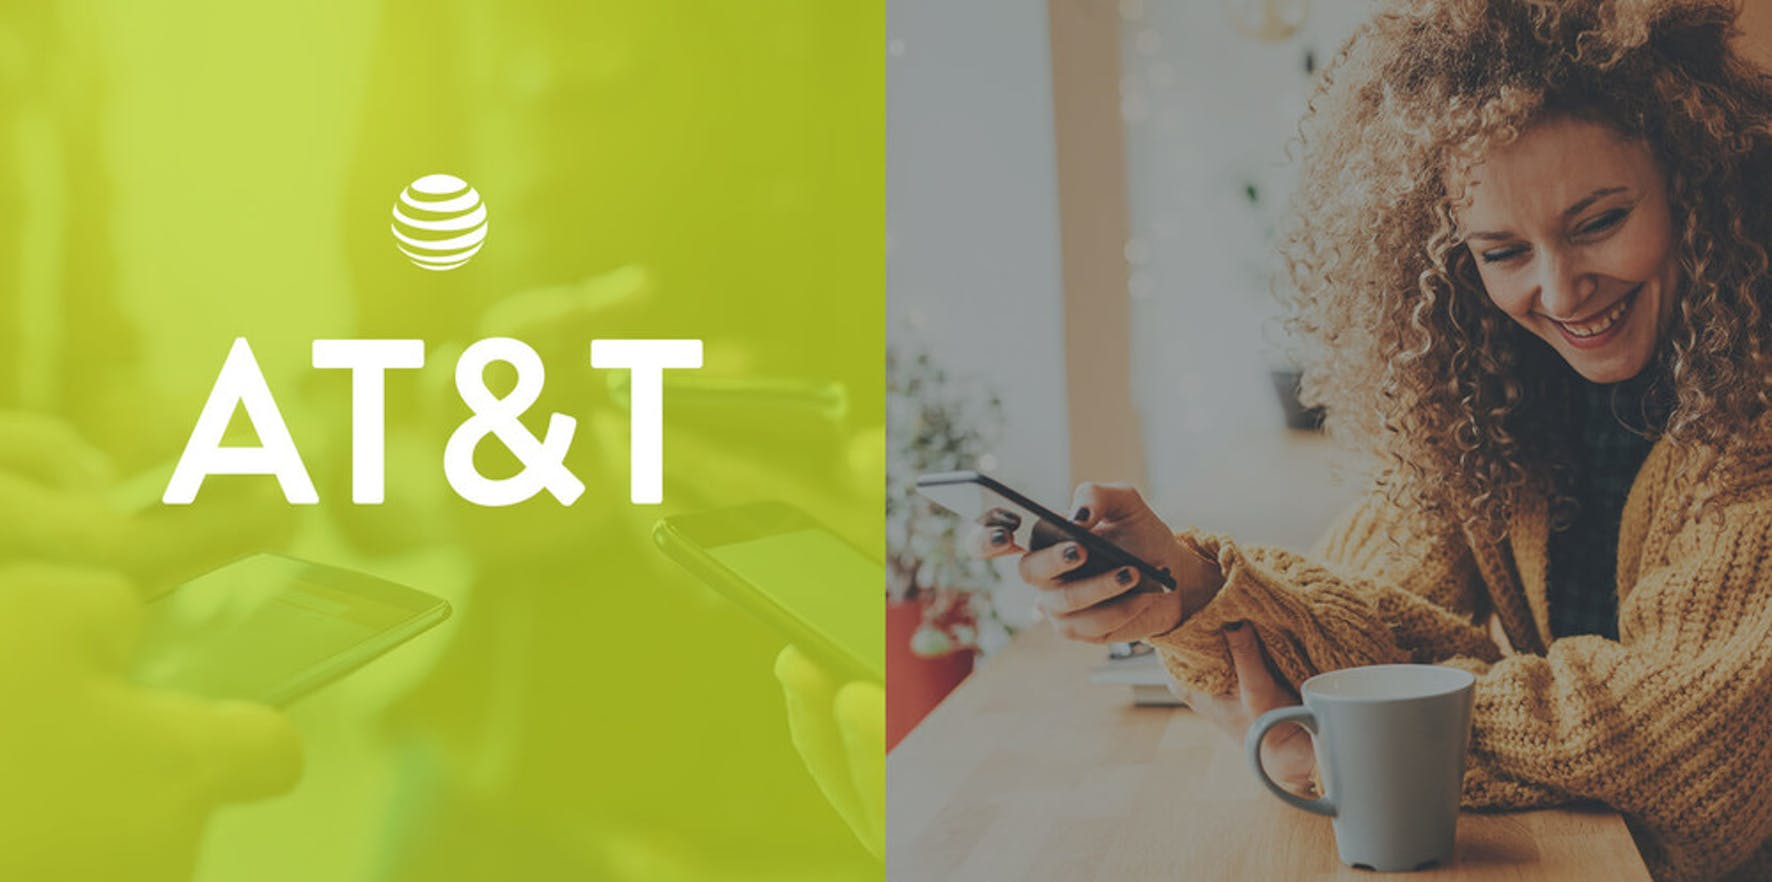 How to Reduce AT&T Cell Phone Bill